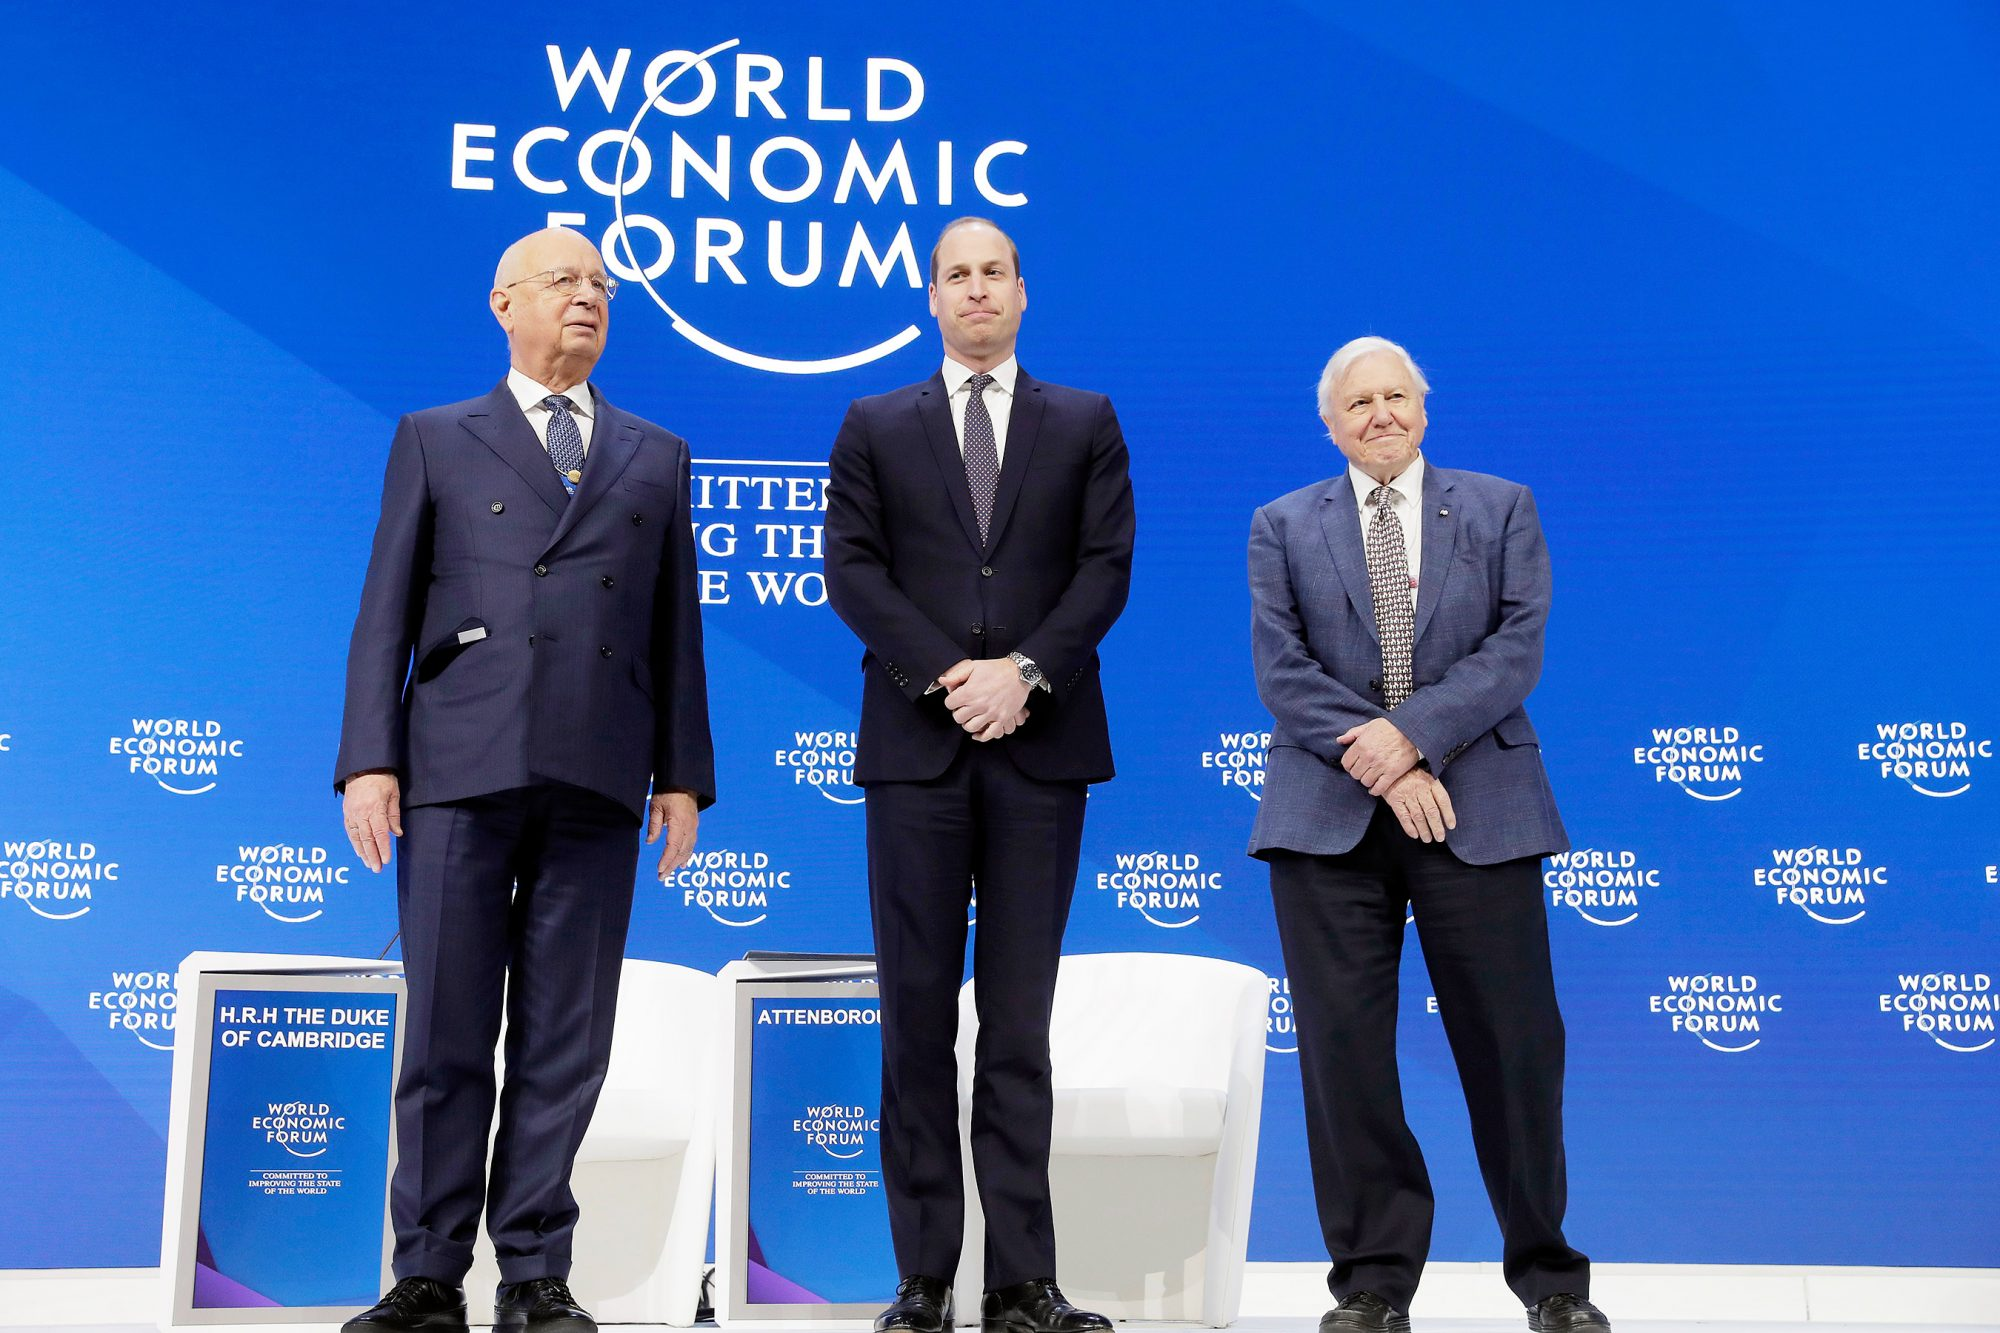 Forum, Davos, Switzerland - 22 Jan 2019